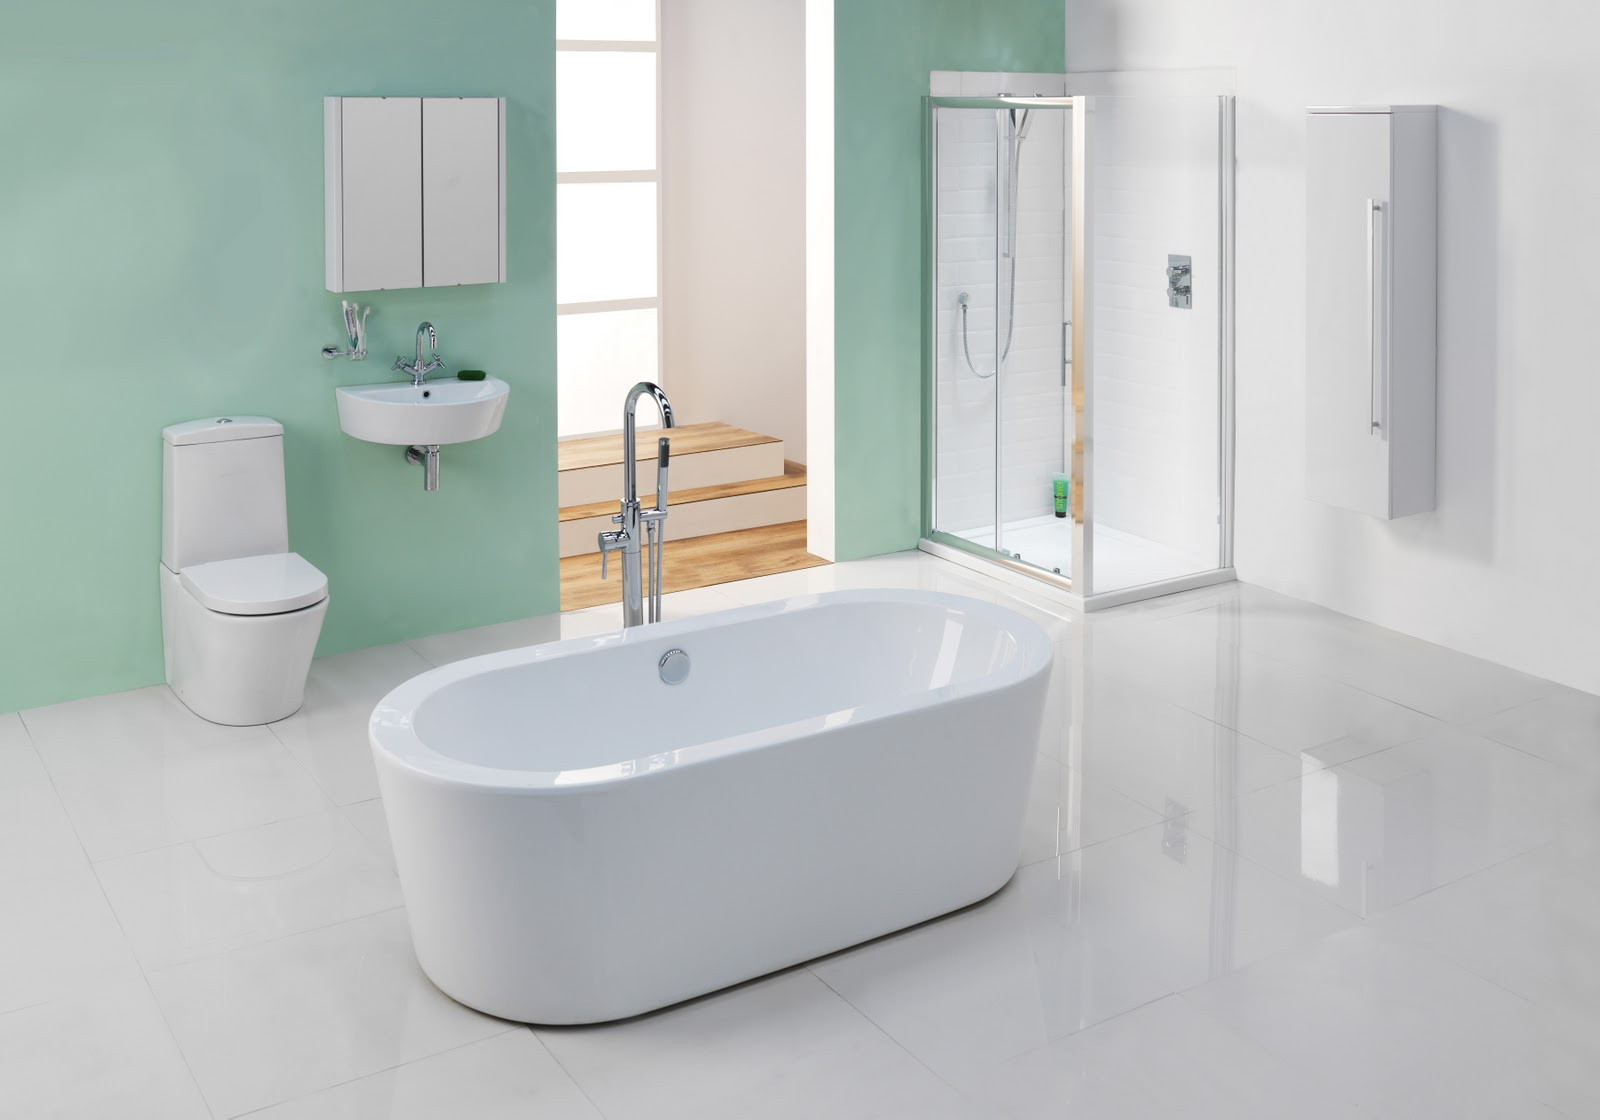 K And B News Mfi Bathrooms Back Kitchens Too Complex with regard to size 1600 X 1120